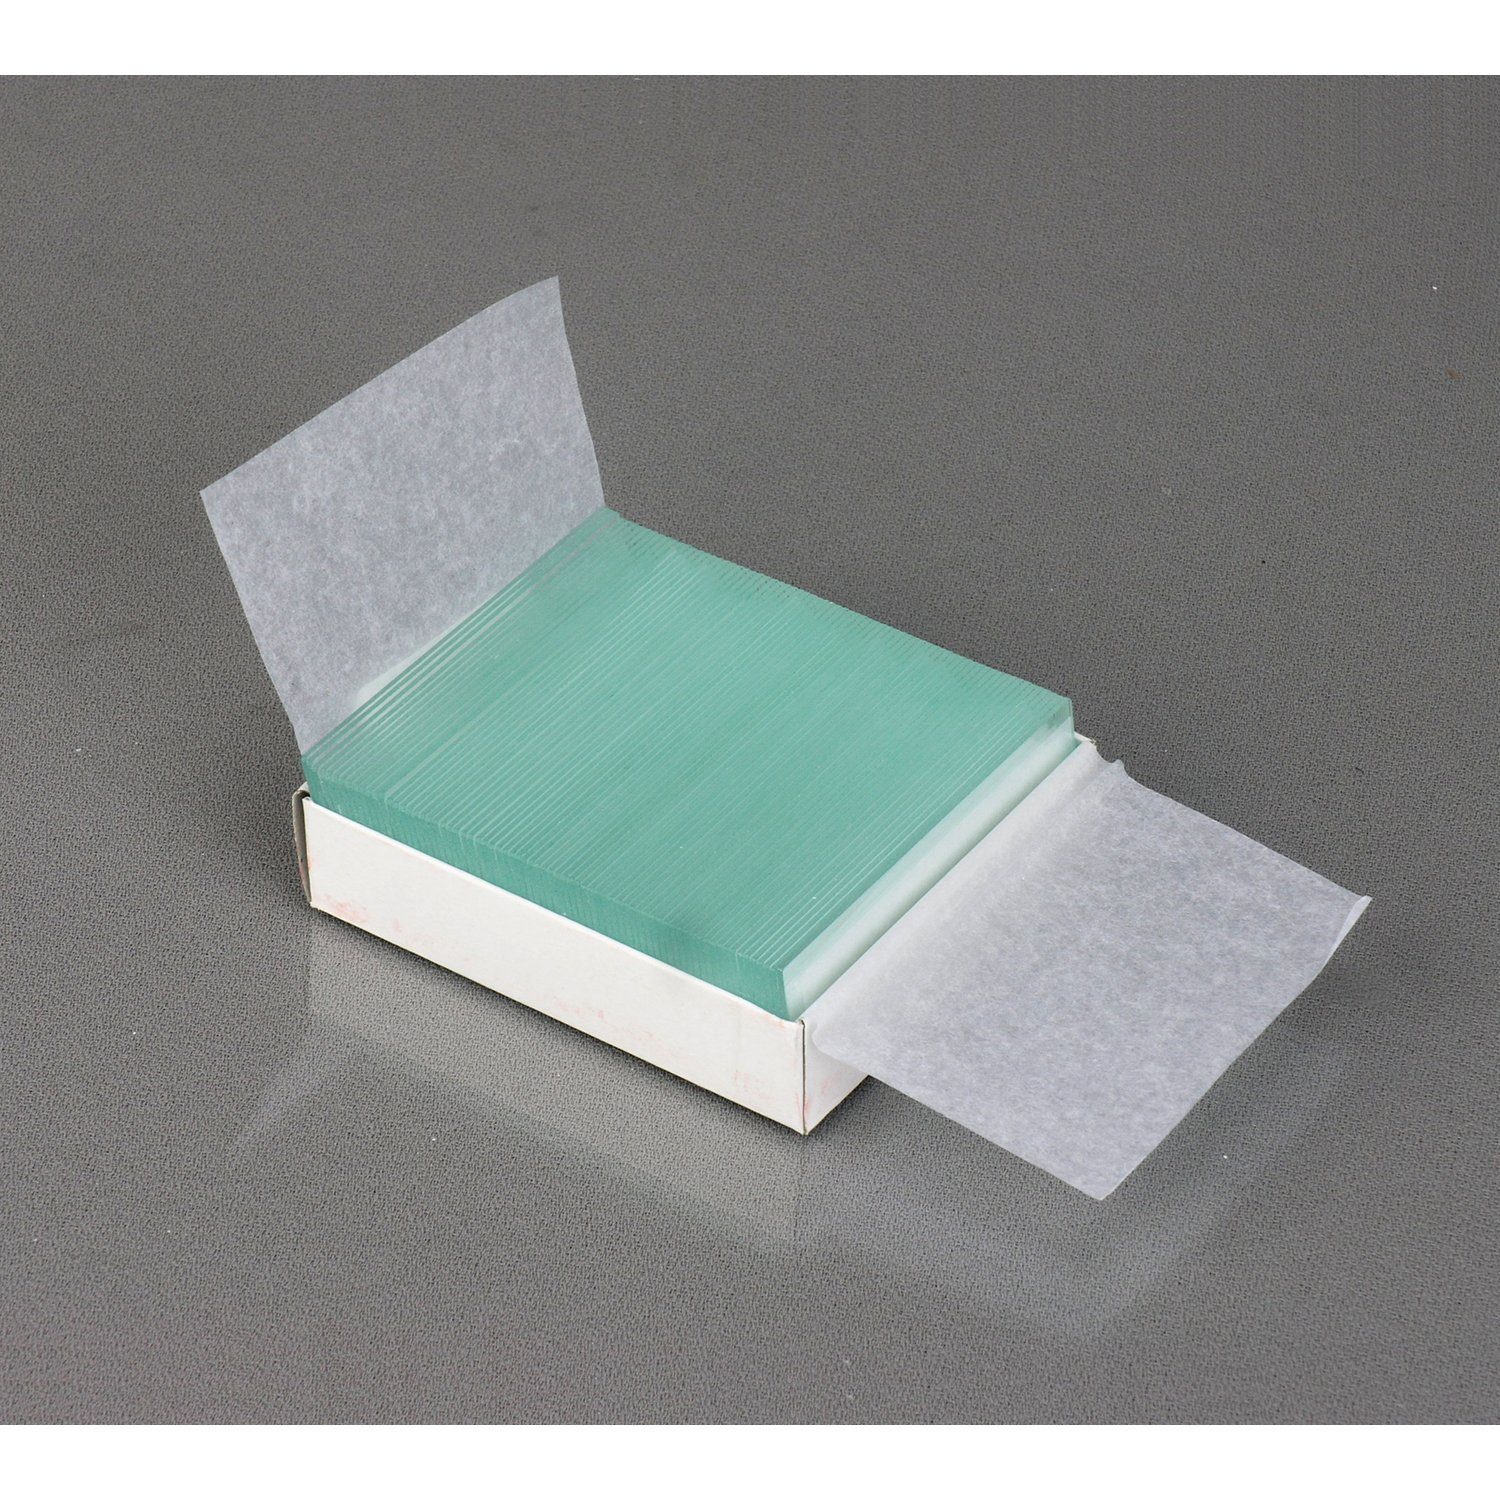 72 Pre-Cleaned Blank Plate Slides 12 Single Depression Concave Slides and 100 Coverslips AmScope PS25-BSC12-72P100S22 25 Microscope Prepared Slides